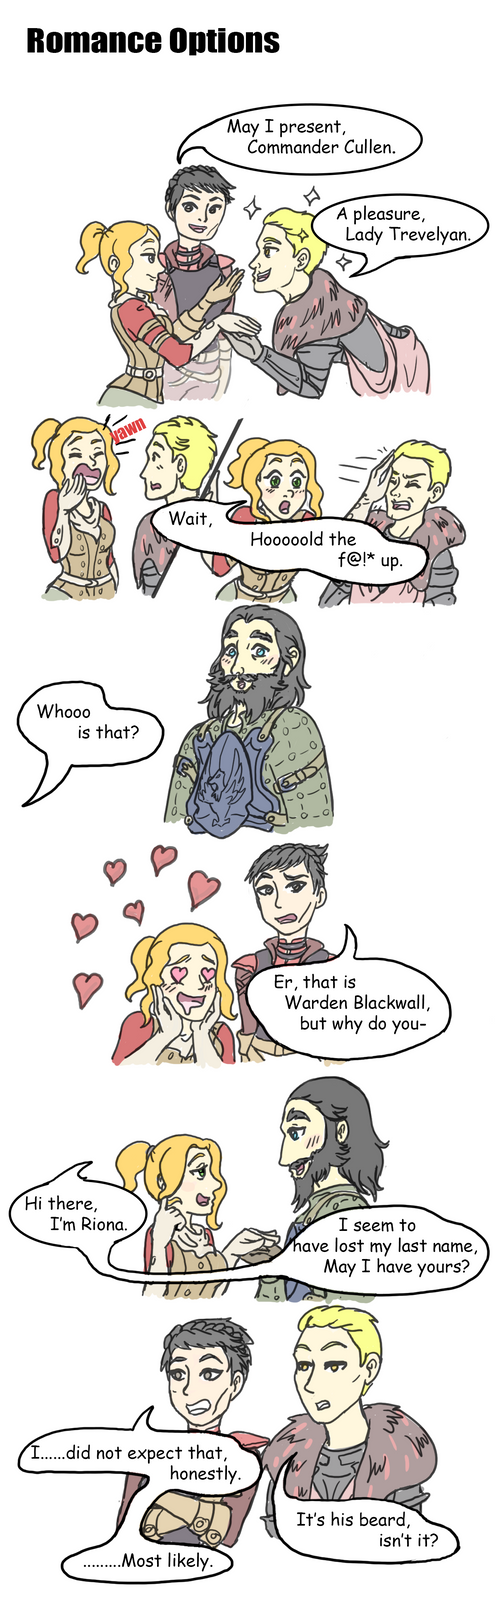 Inquisition Romance Options by JessieReigne